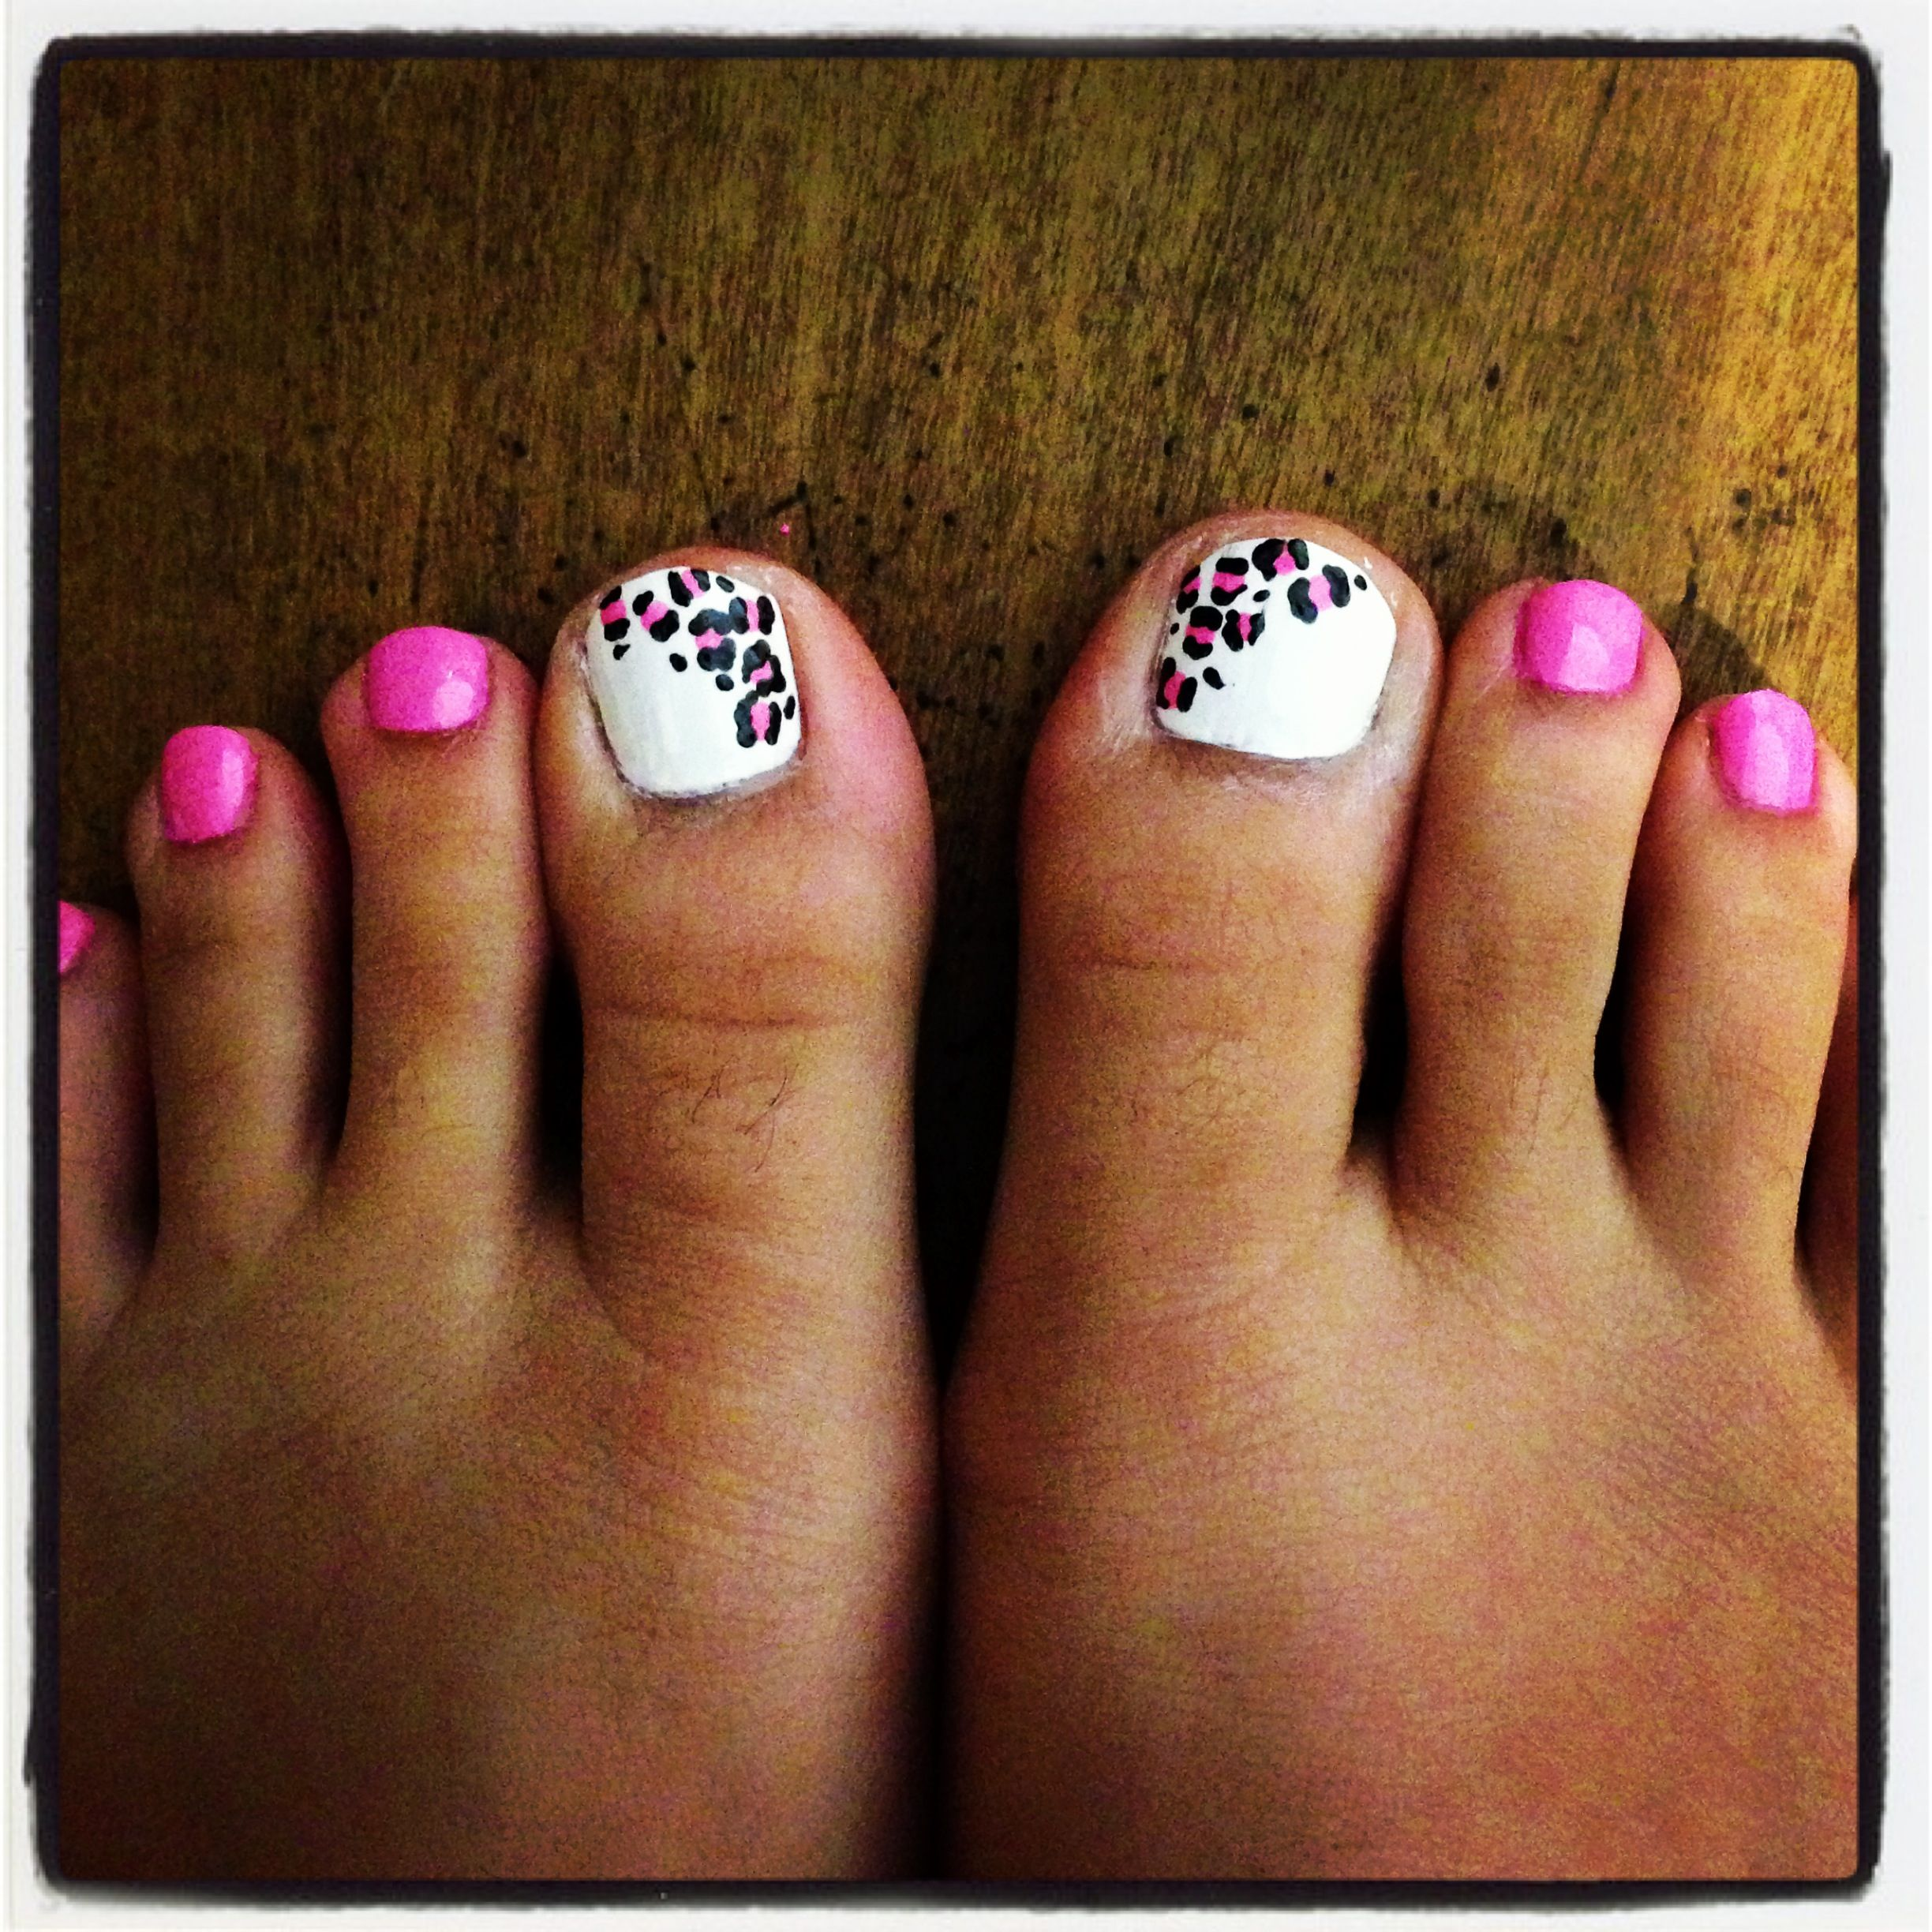 Pink And White Leopard Pink Toe Nail Art Cute Girly Nail Art I Love This Design I Tried It With Essie Tart Deco As A Toe Nails Cute Toe Nails Pink